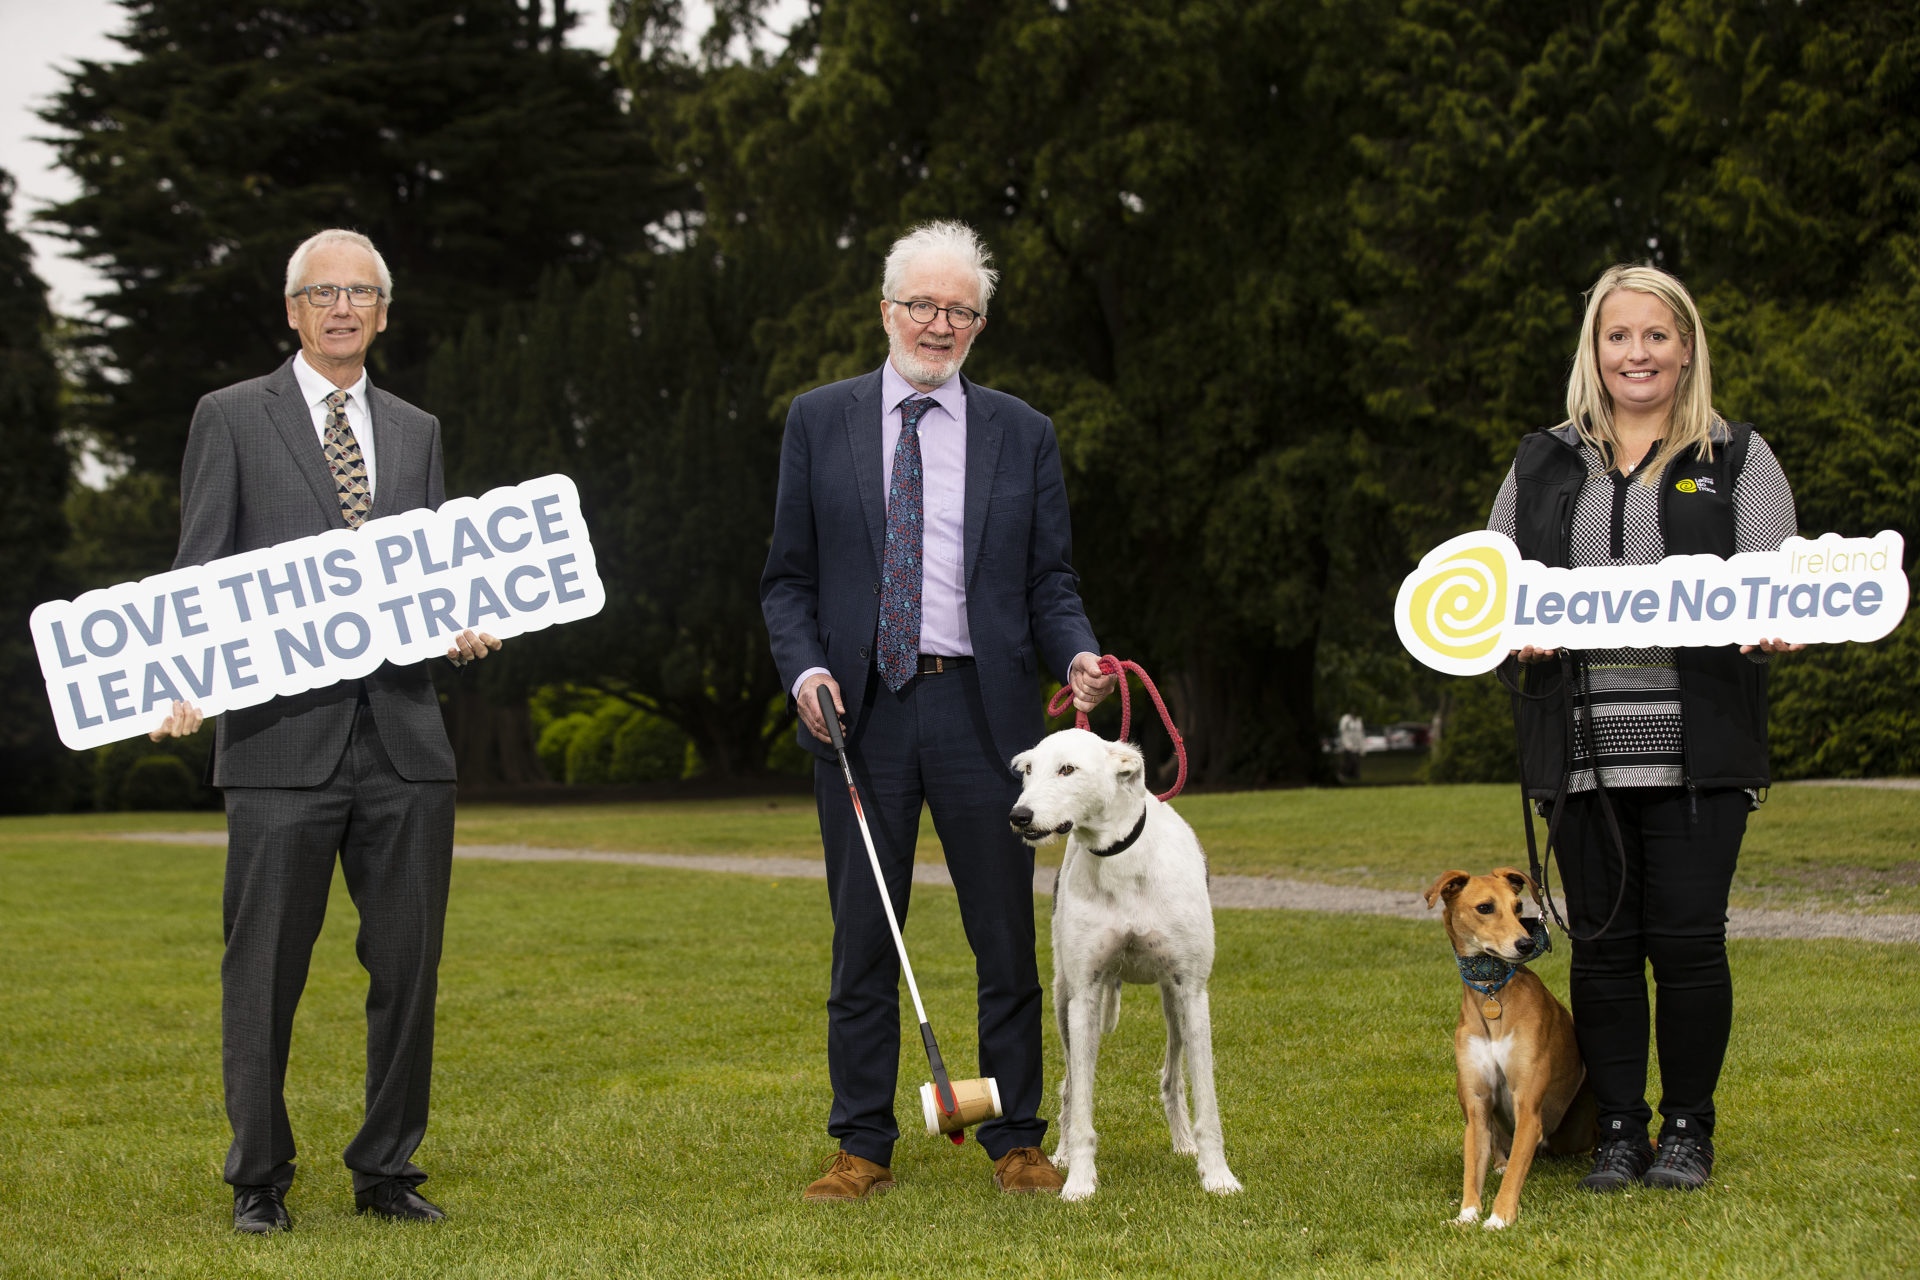 Launch Of The Leave No Trace Ireland Campaign 28/6/2021